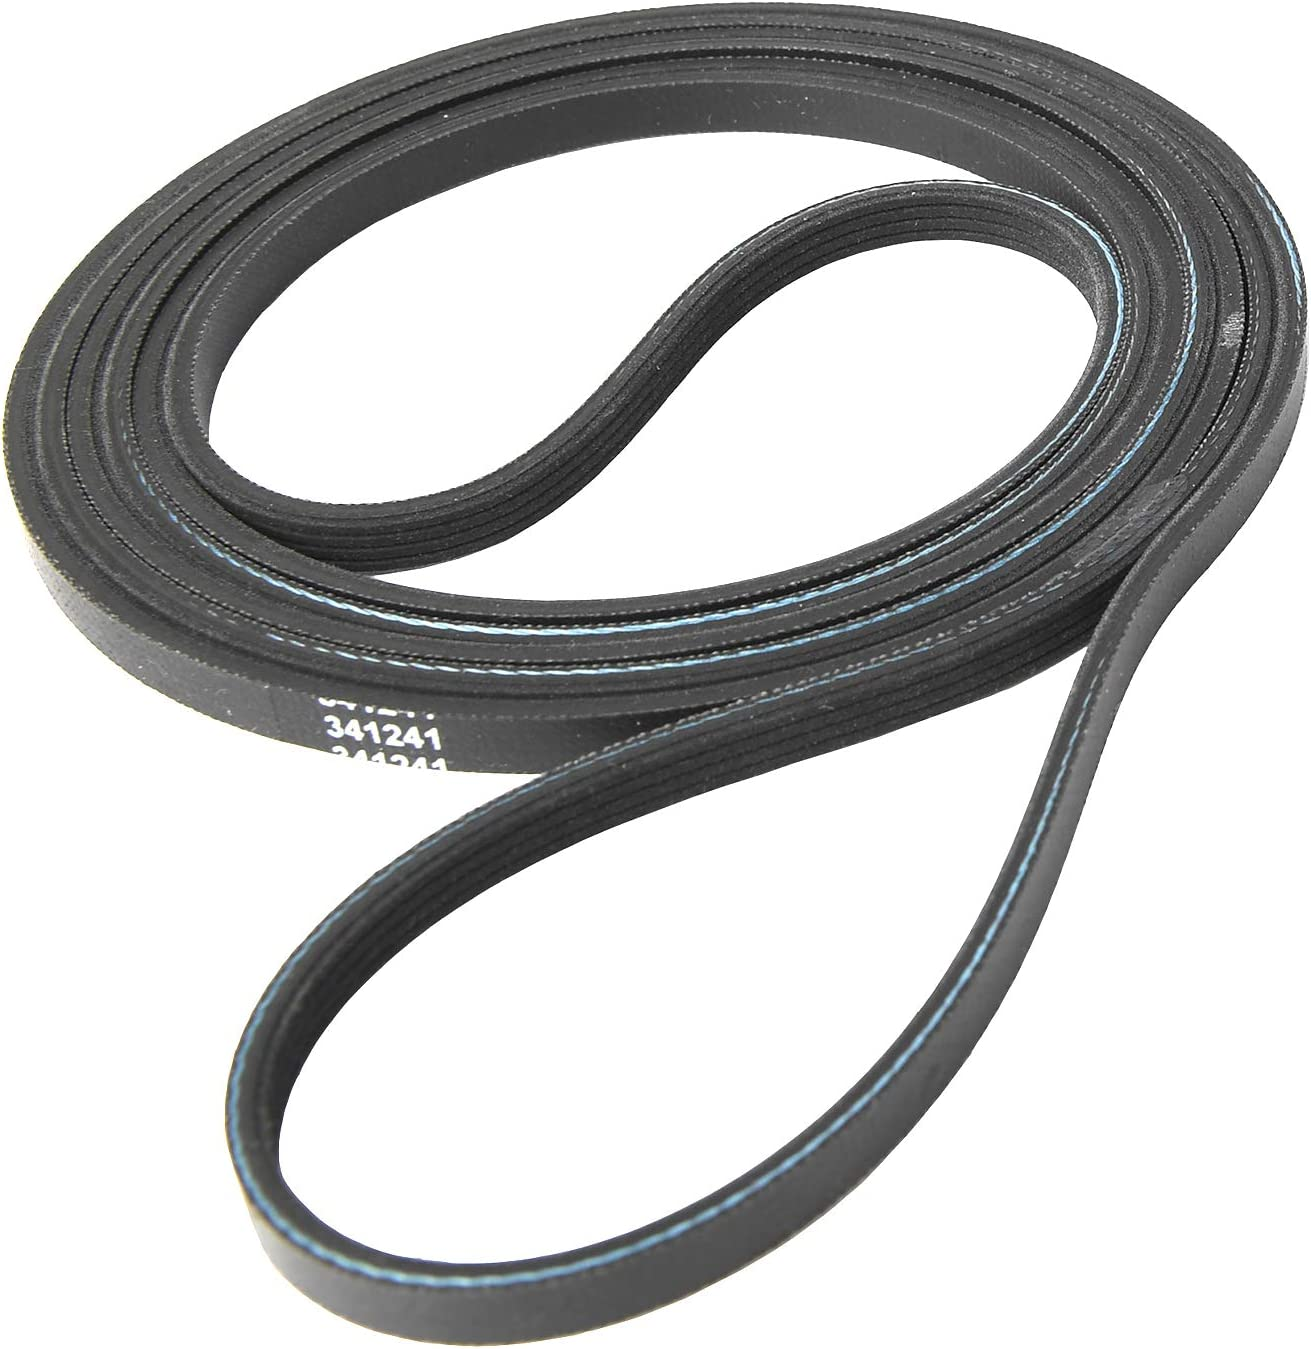 W10127457 8066065,694088,26000341241 26000349533 31001026 by Seentech 341241 Dryer Drum Belt:- Exact fit for Whirlpool /& Kenmore Dryer- Replaces Part Numbers AP2946843 FSP341241